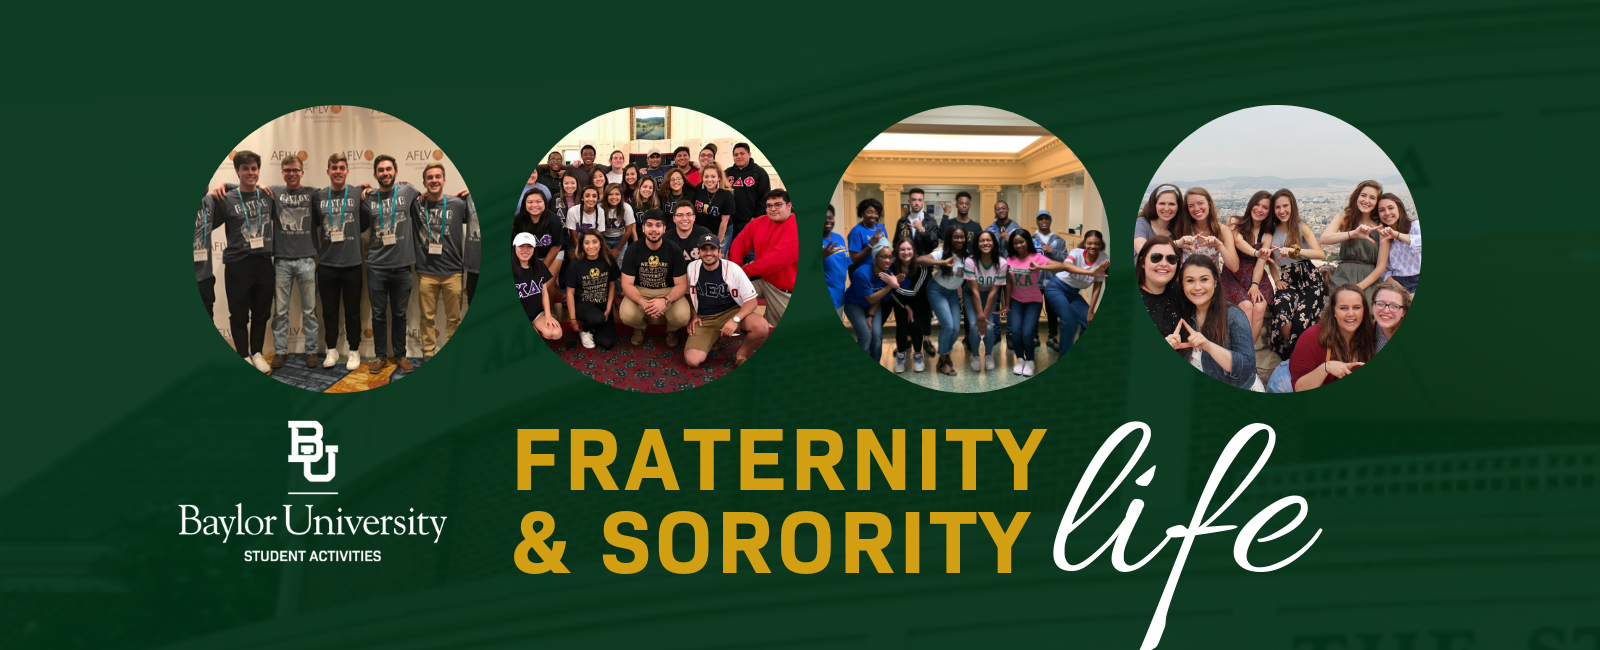 Fraternity and Sorority Life Banner